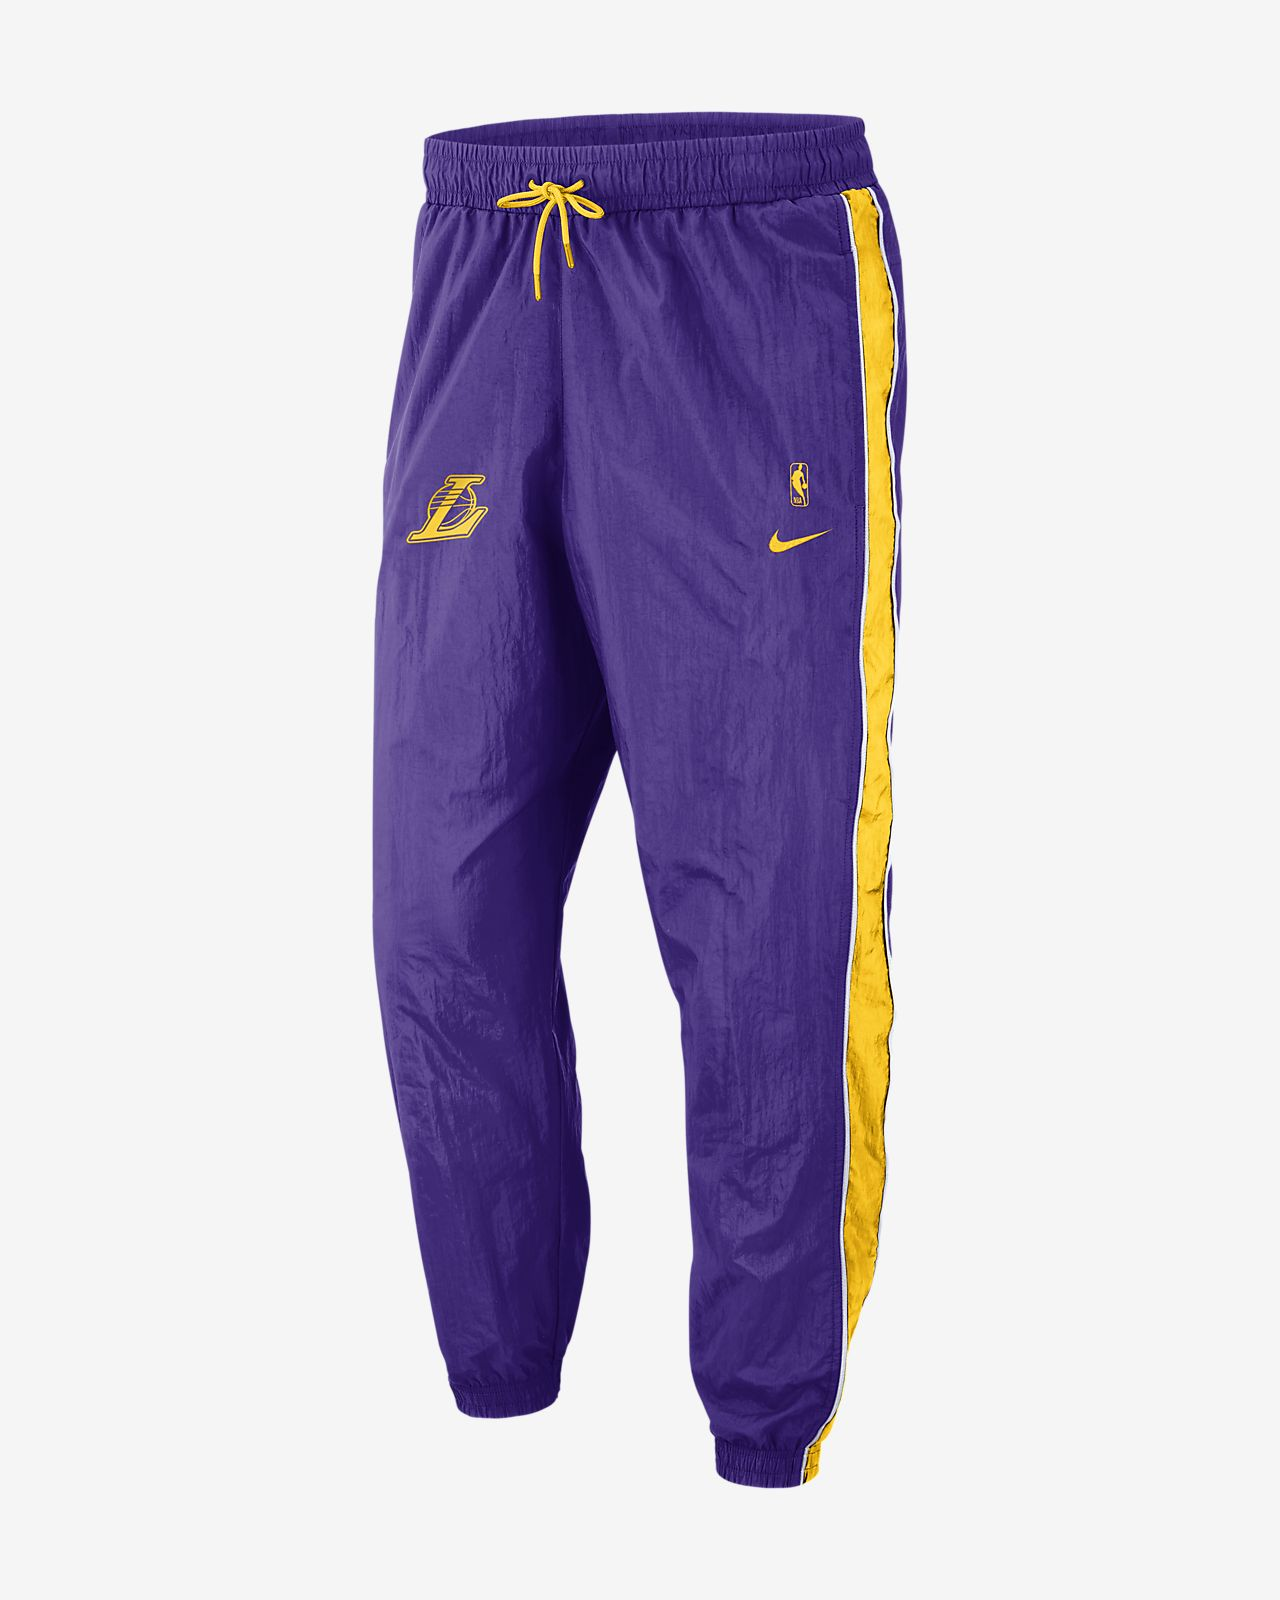 4bfd44ae7098 Los Angeles Lakers Nike Men s NBA Tracksuit Pants. Nike.com